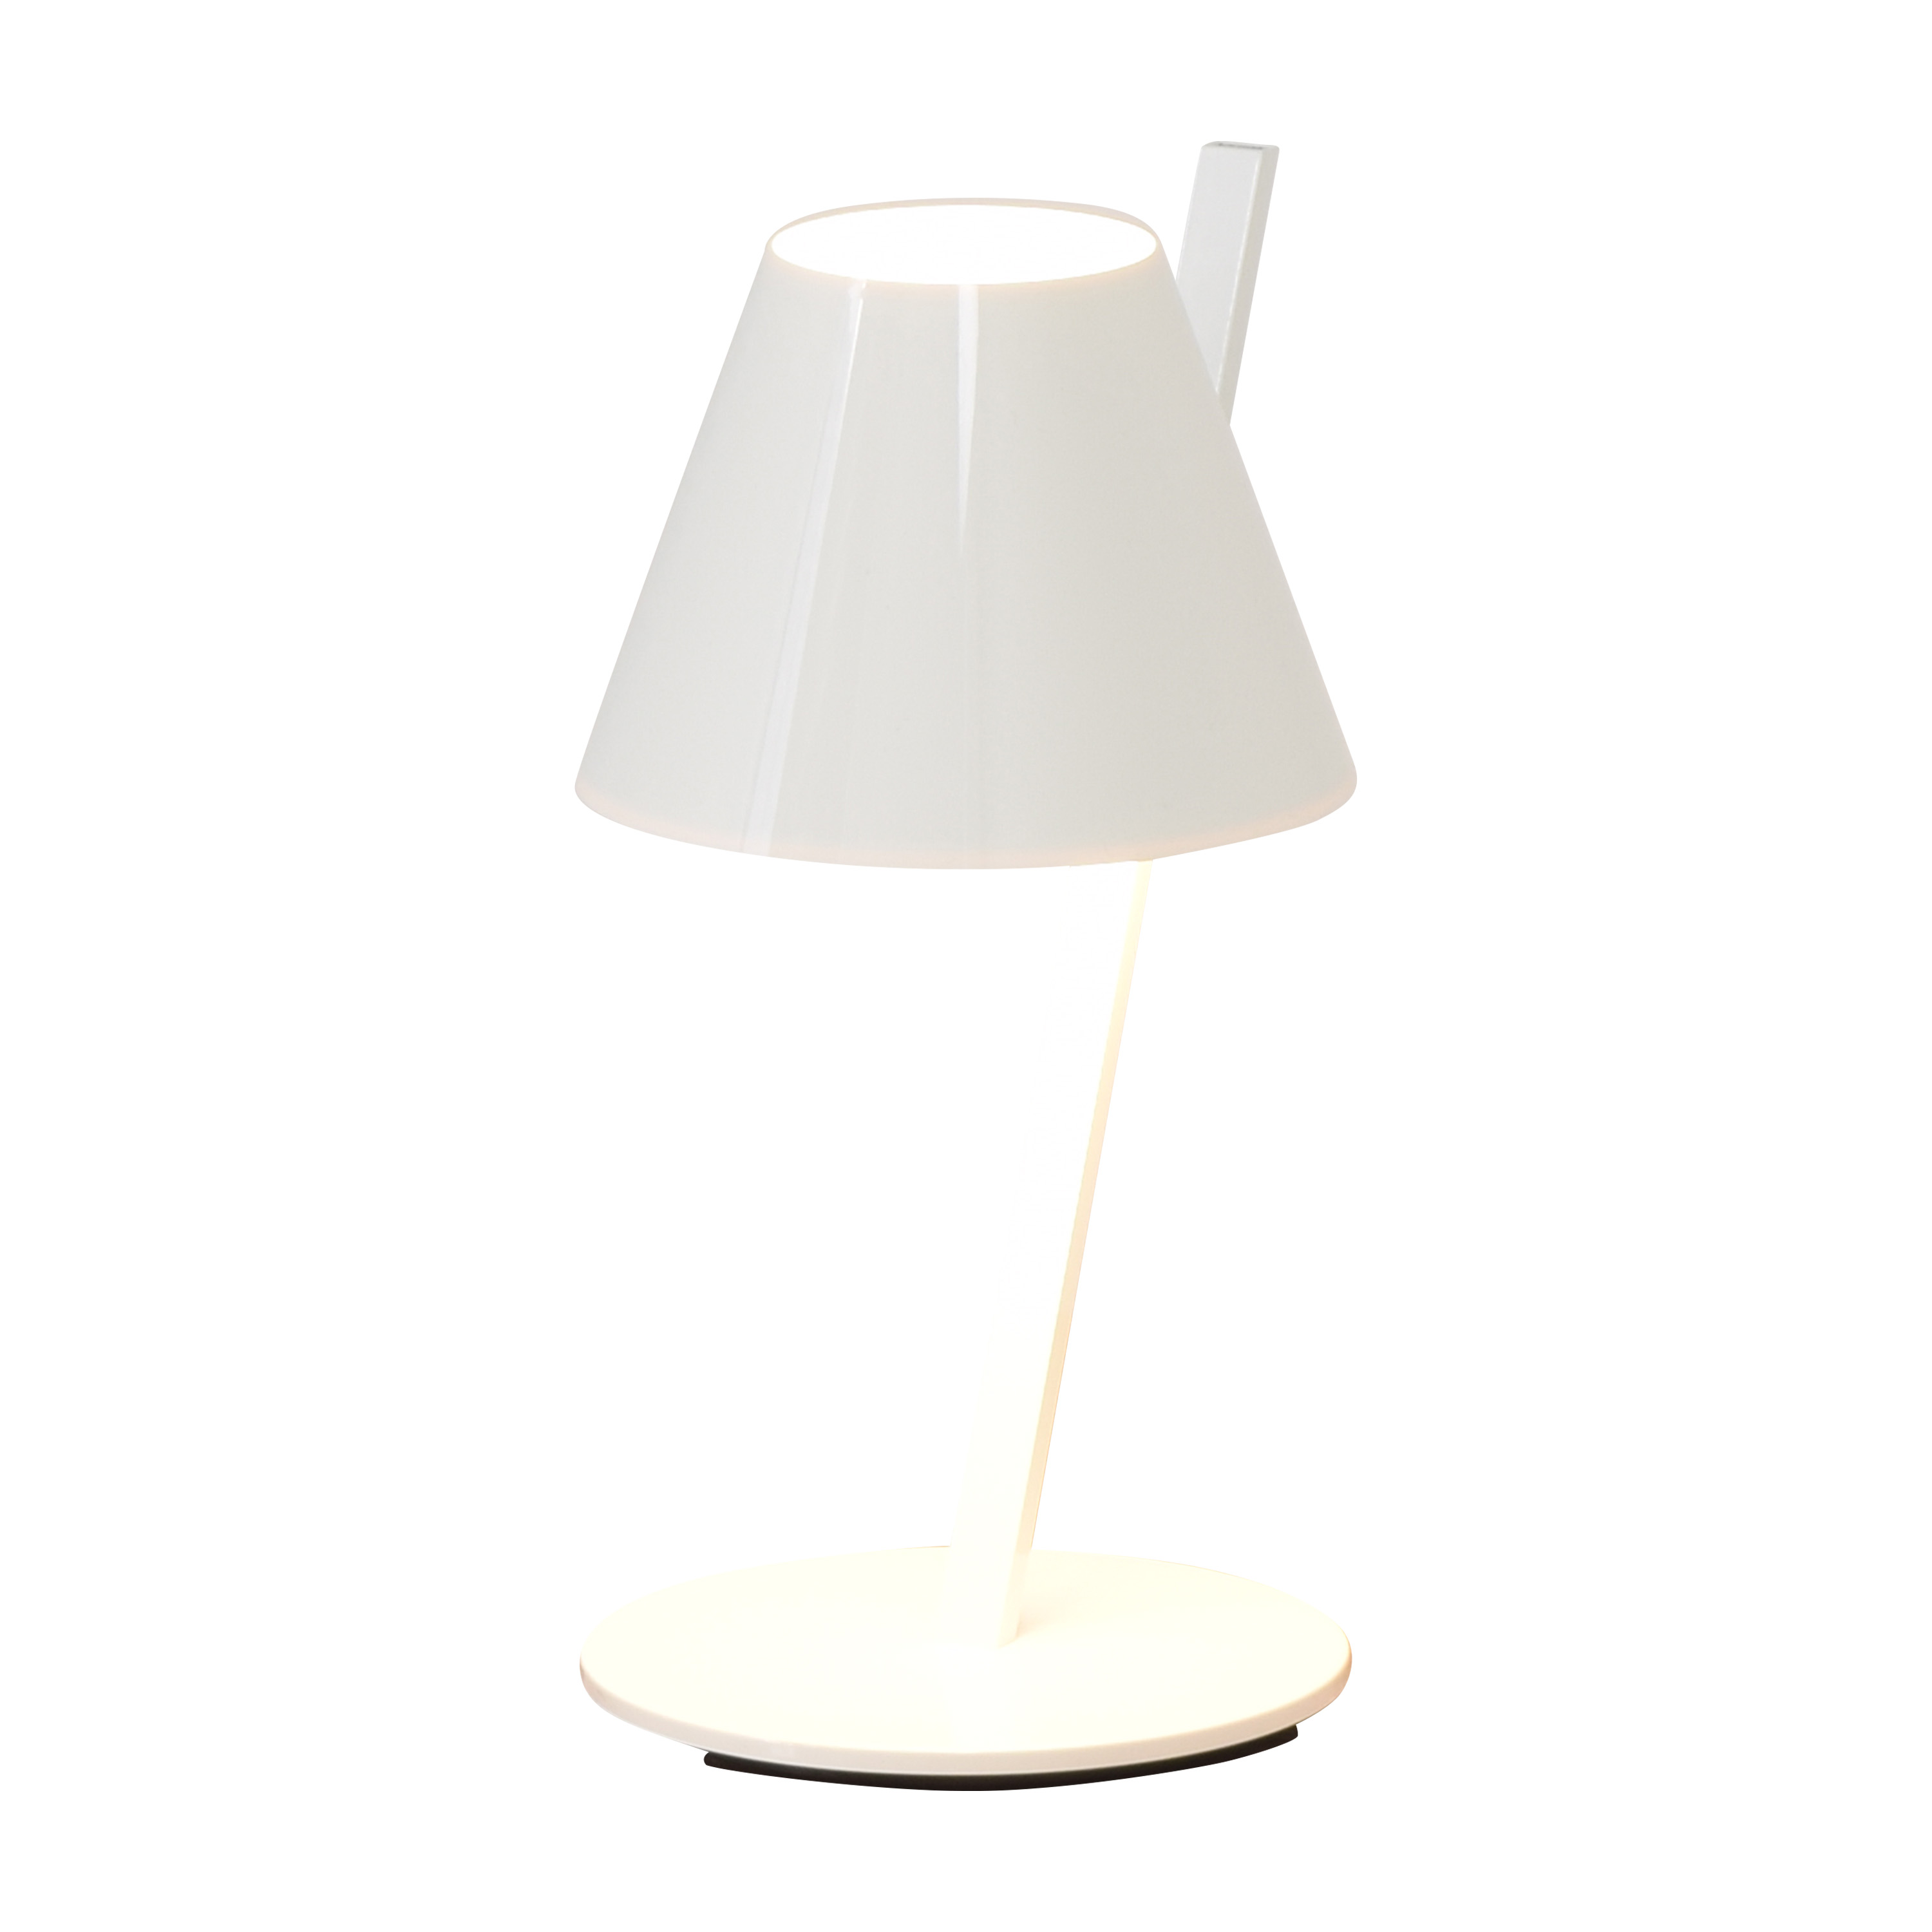 Artemide Artemide La Petite Table Lamp dimensions